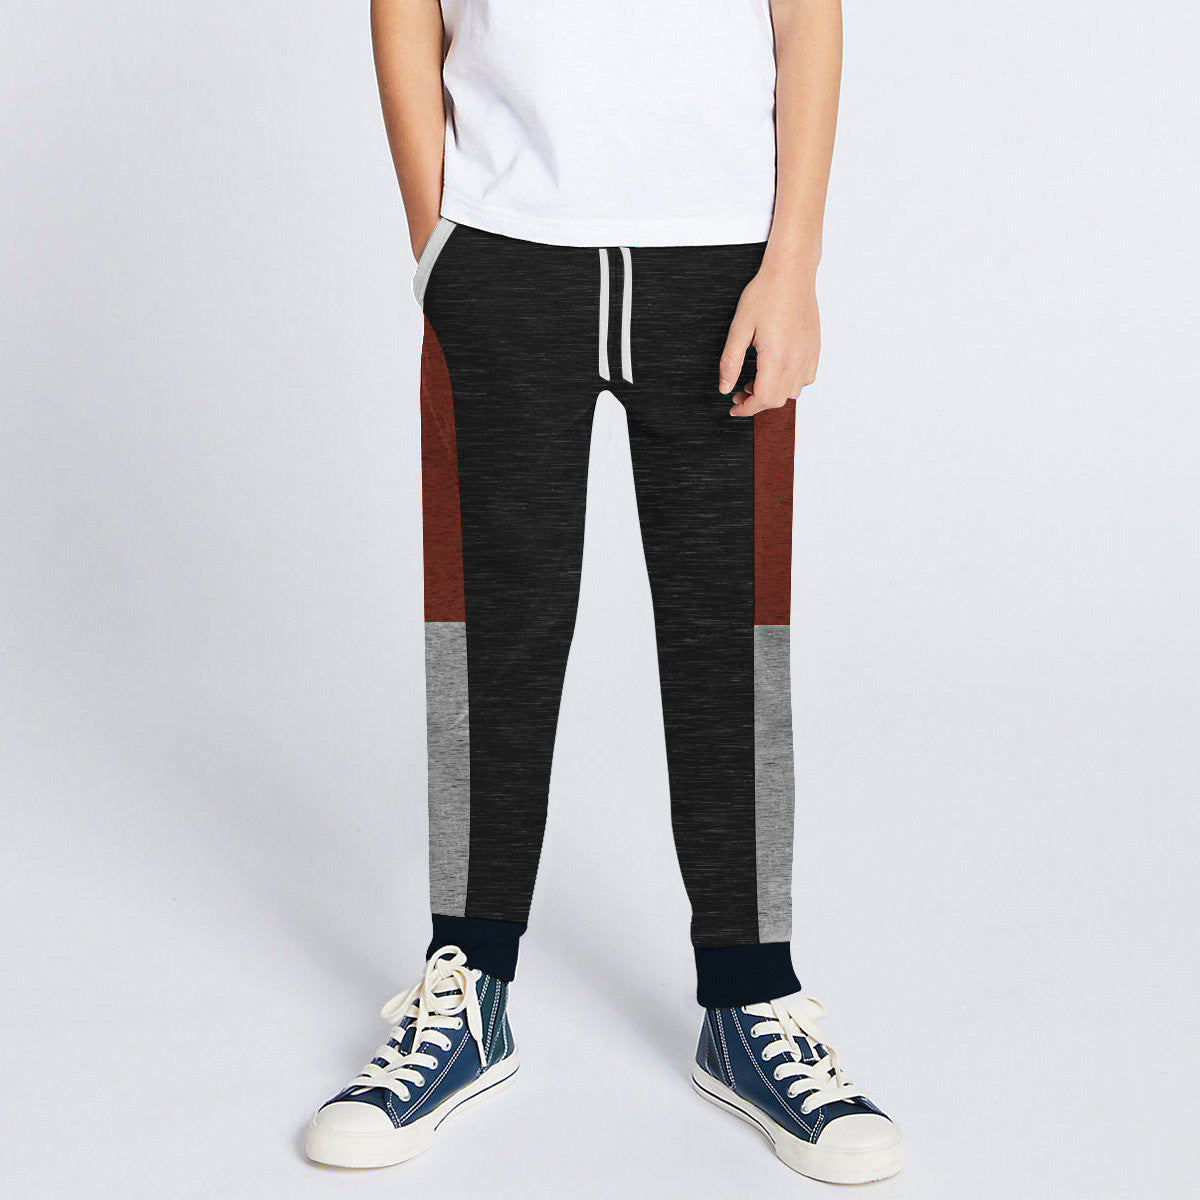 Next Slim Fit Jogger Trouser For Kids-Black Melange with Dark Maroon & Grey Melange Panels-SP2678